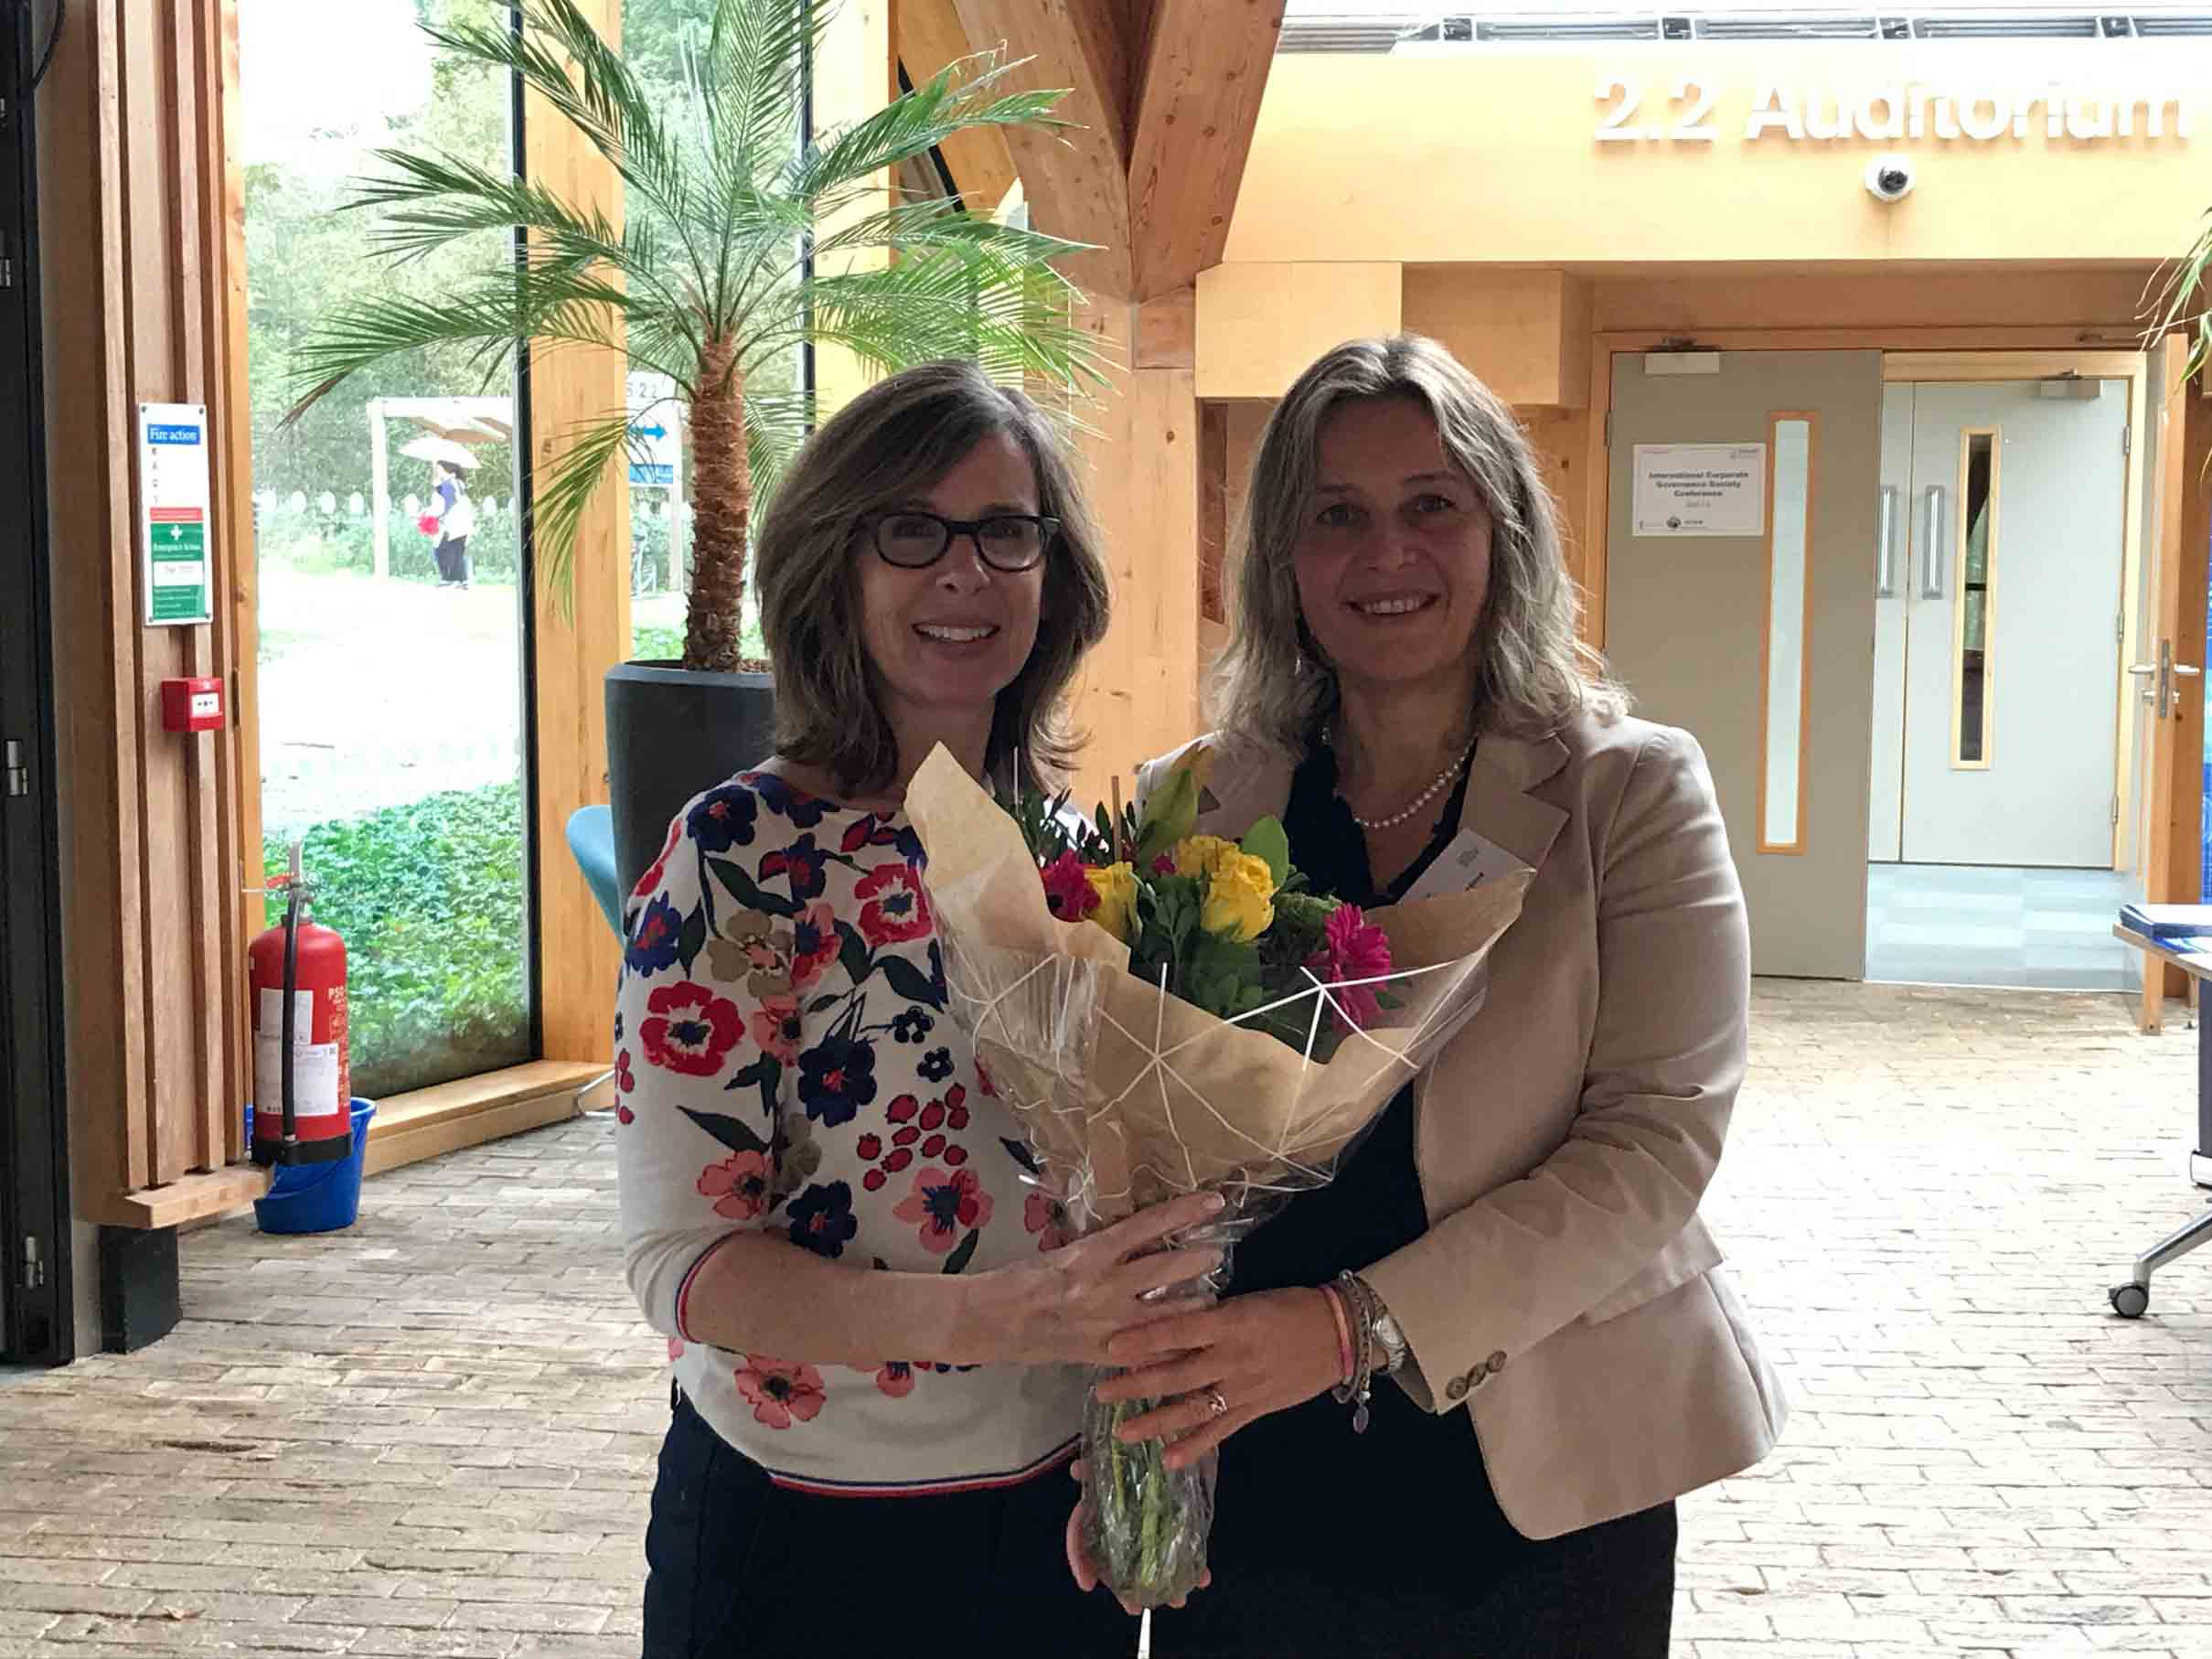 ICGS thanks Cynthia Clark, Director, Harold Geneen Institute of Corporate Governance and Claudia Girardone, 2019 ICGS Conference Co-Chair for all of their hard work in oranizing and supporting the conference.